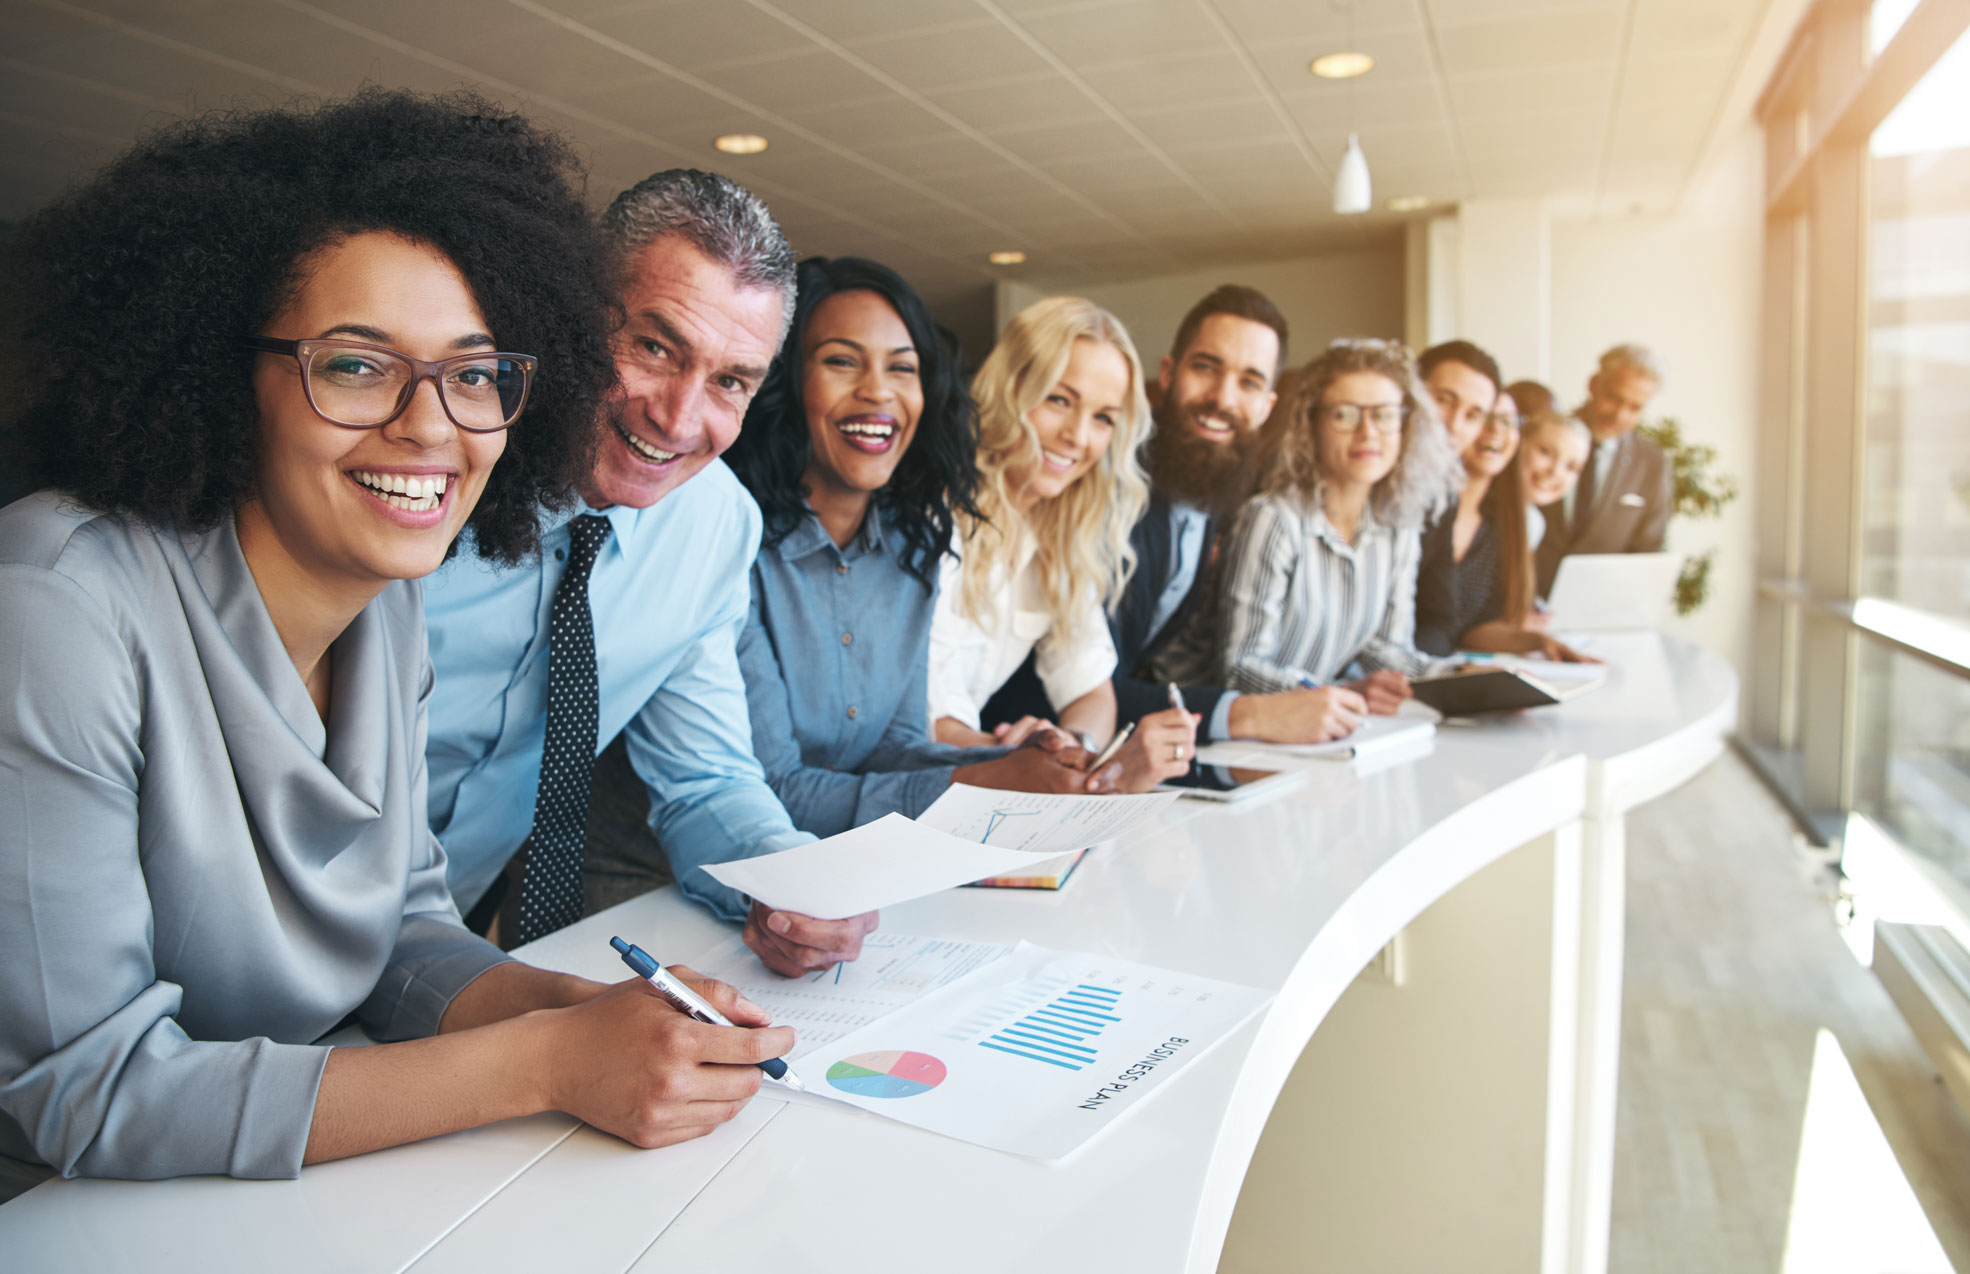 How Employees' Financial Well-Being Benefits Employers